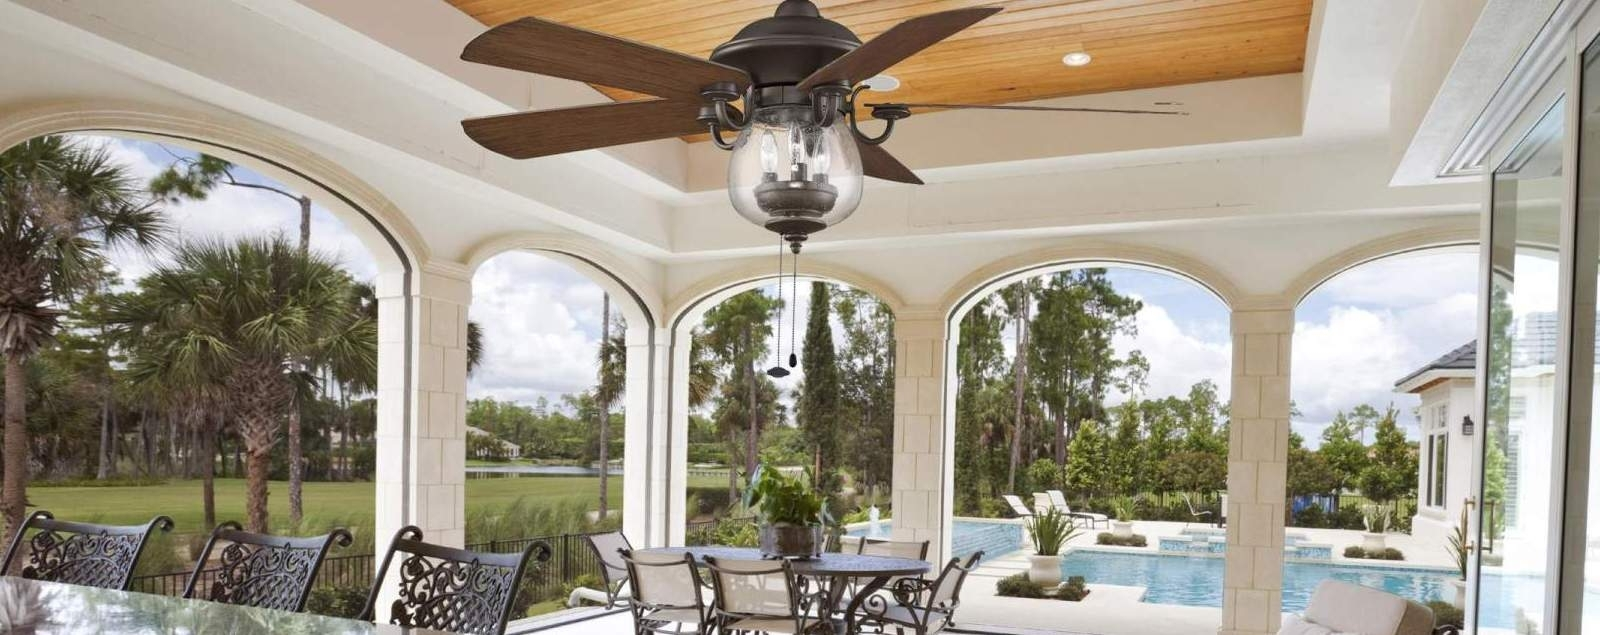 Outdoor Ceiling Fans – Shop Wet, Dry, And Damp Rated Outdoor Fans In Well Liked Outdoor Ceiling Fans (View 15 of 20)